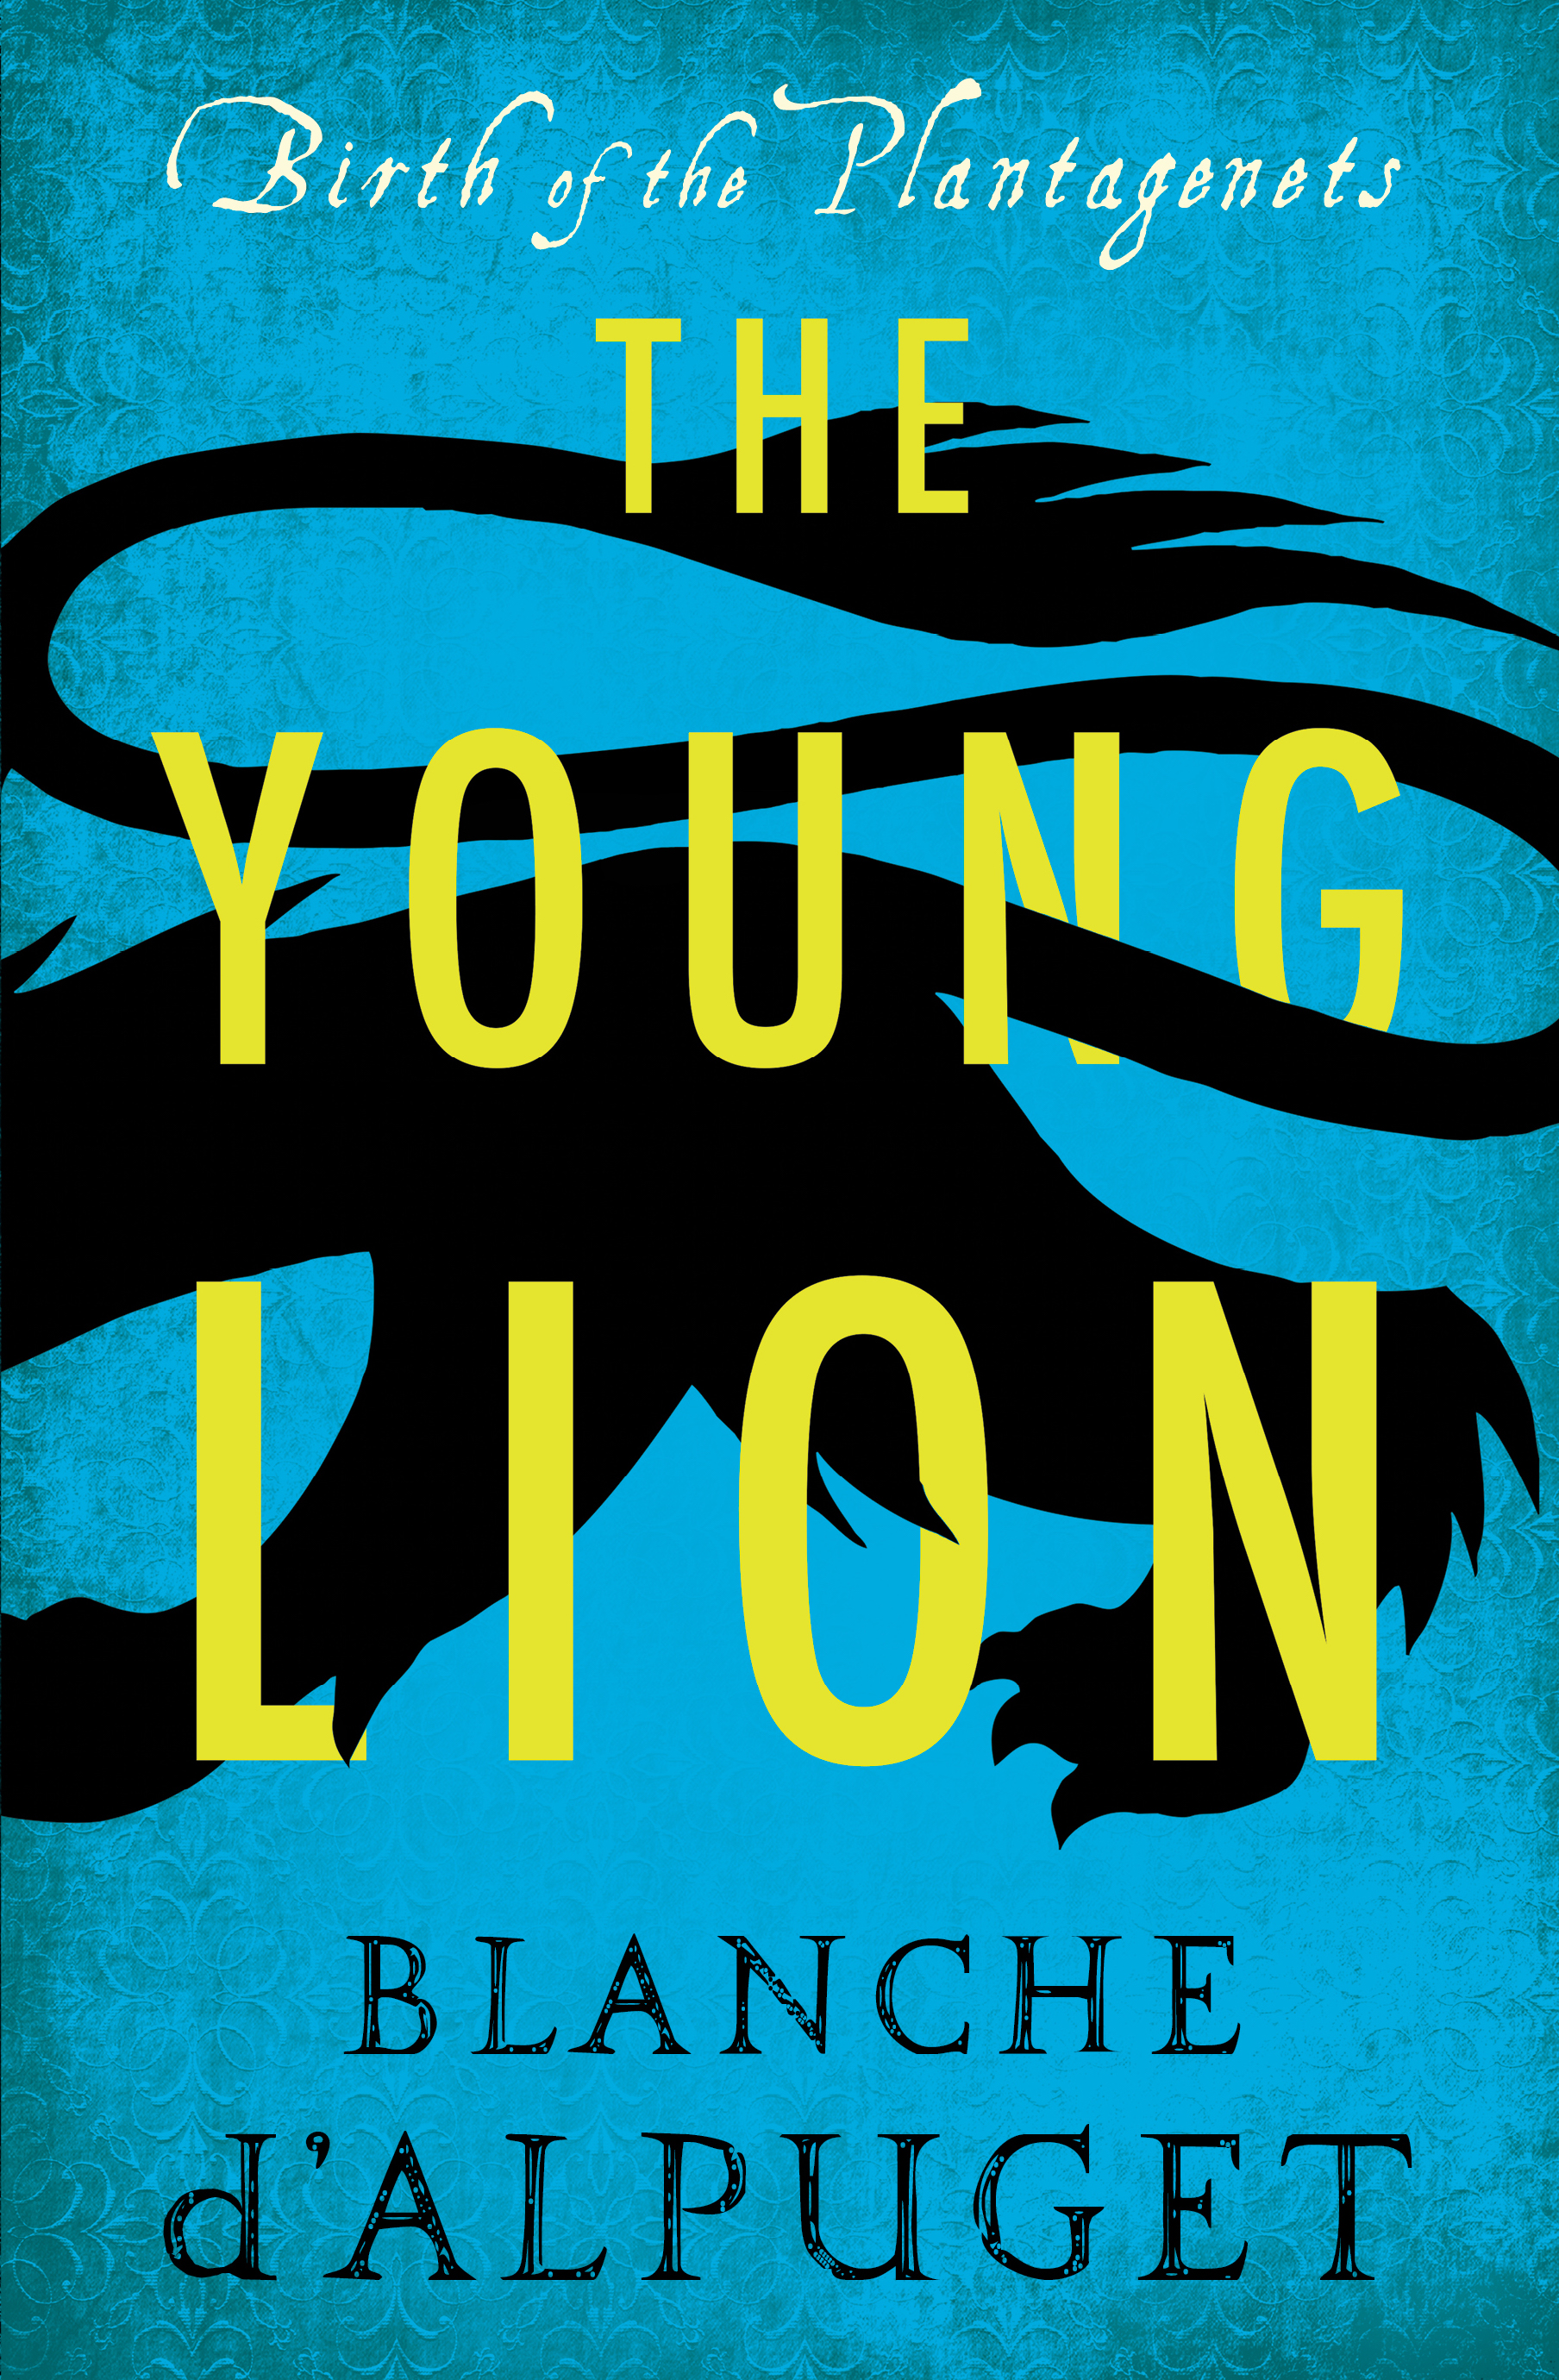 HOP_book1_Young Lion_FRONTCOVER.jpg